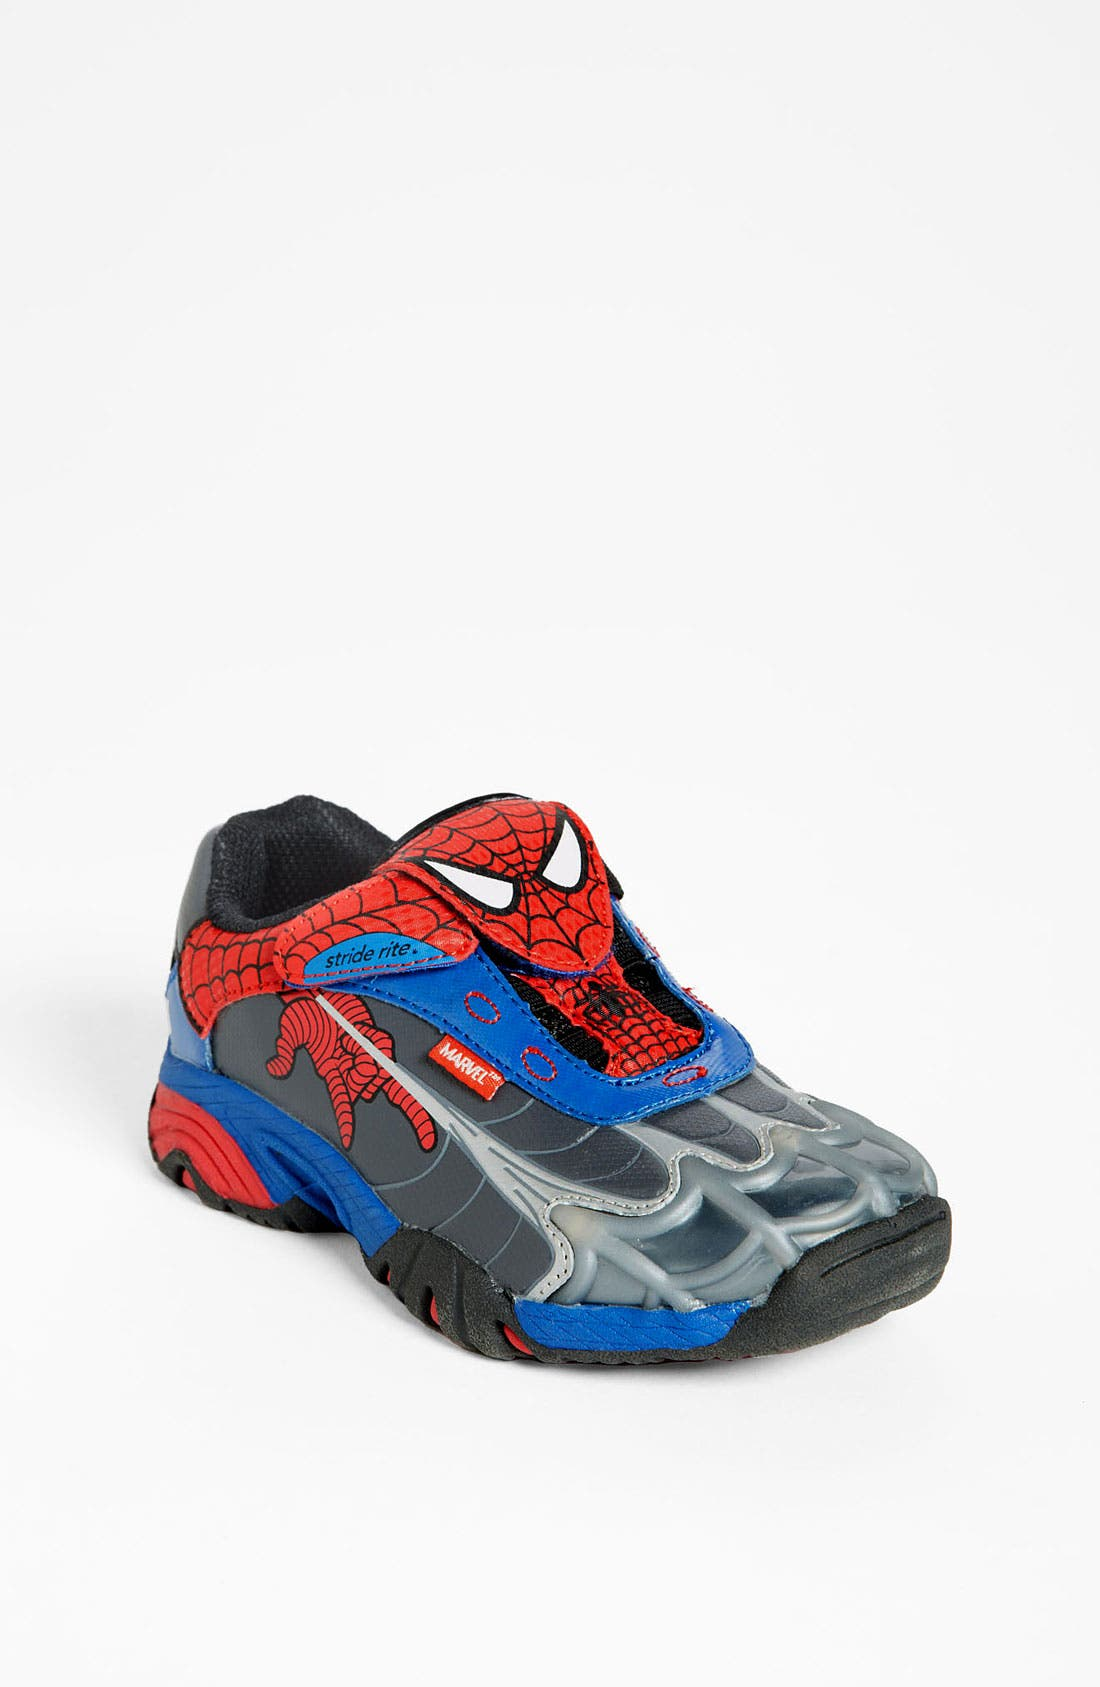 Alternate Image 1 Selected - Stride Rite 'Spidey Sense' Sneaker (Toddler & Little Kid)